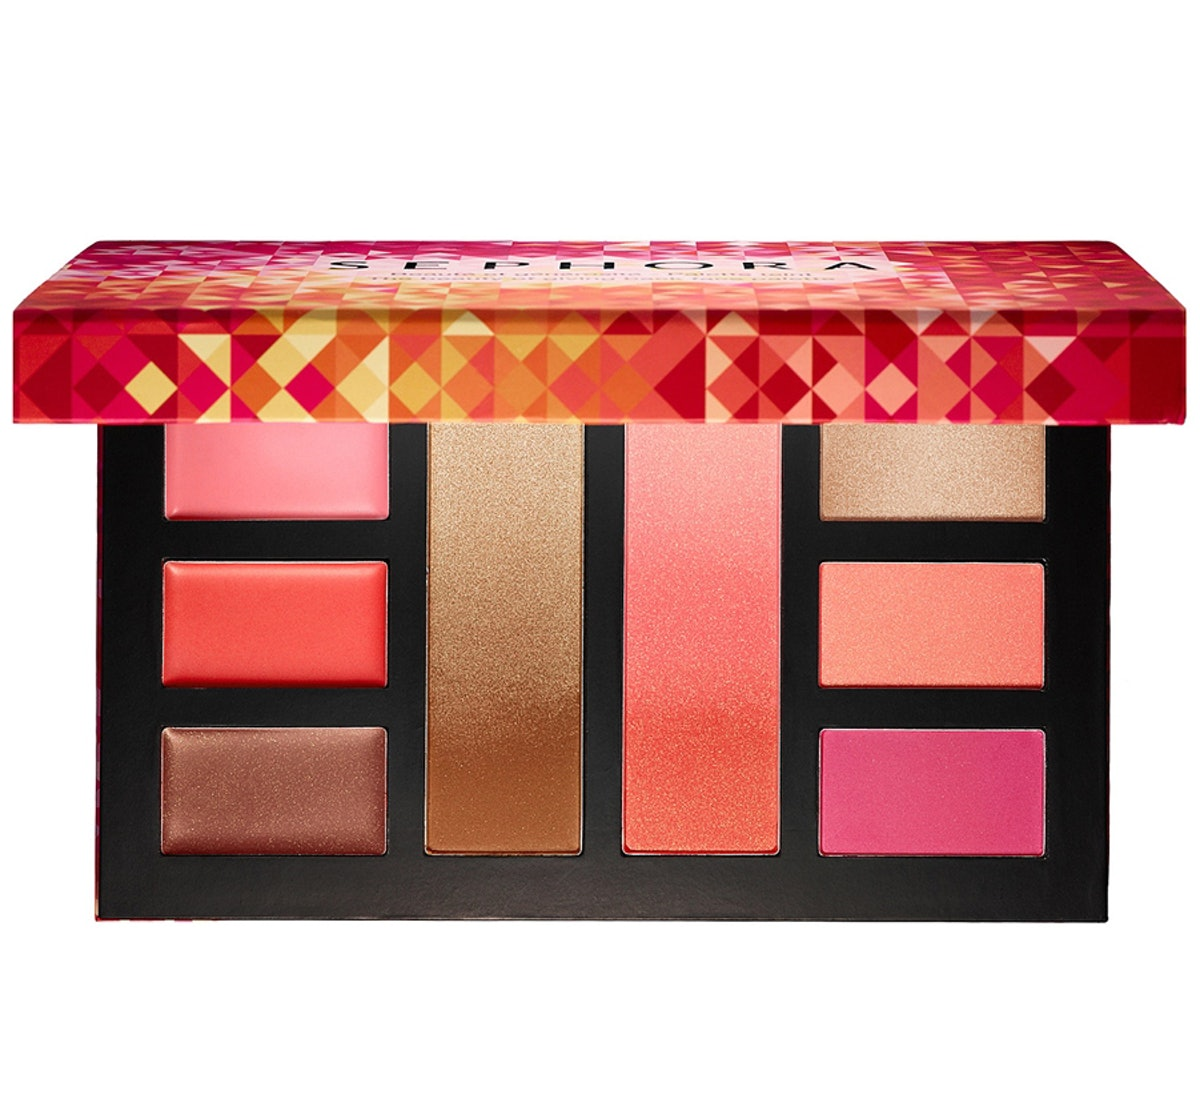 Sephora Collection the Beauty of Giving Back Face Palette